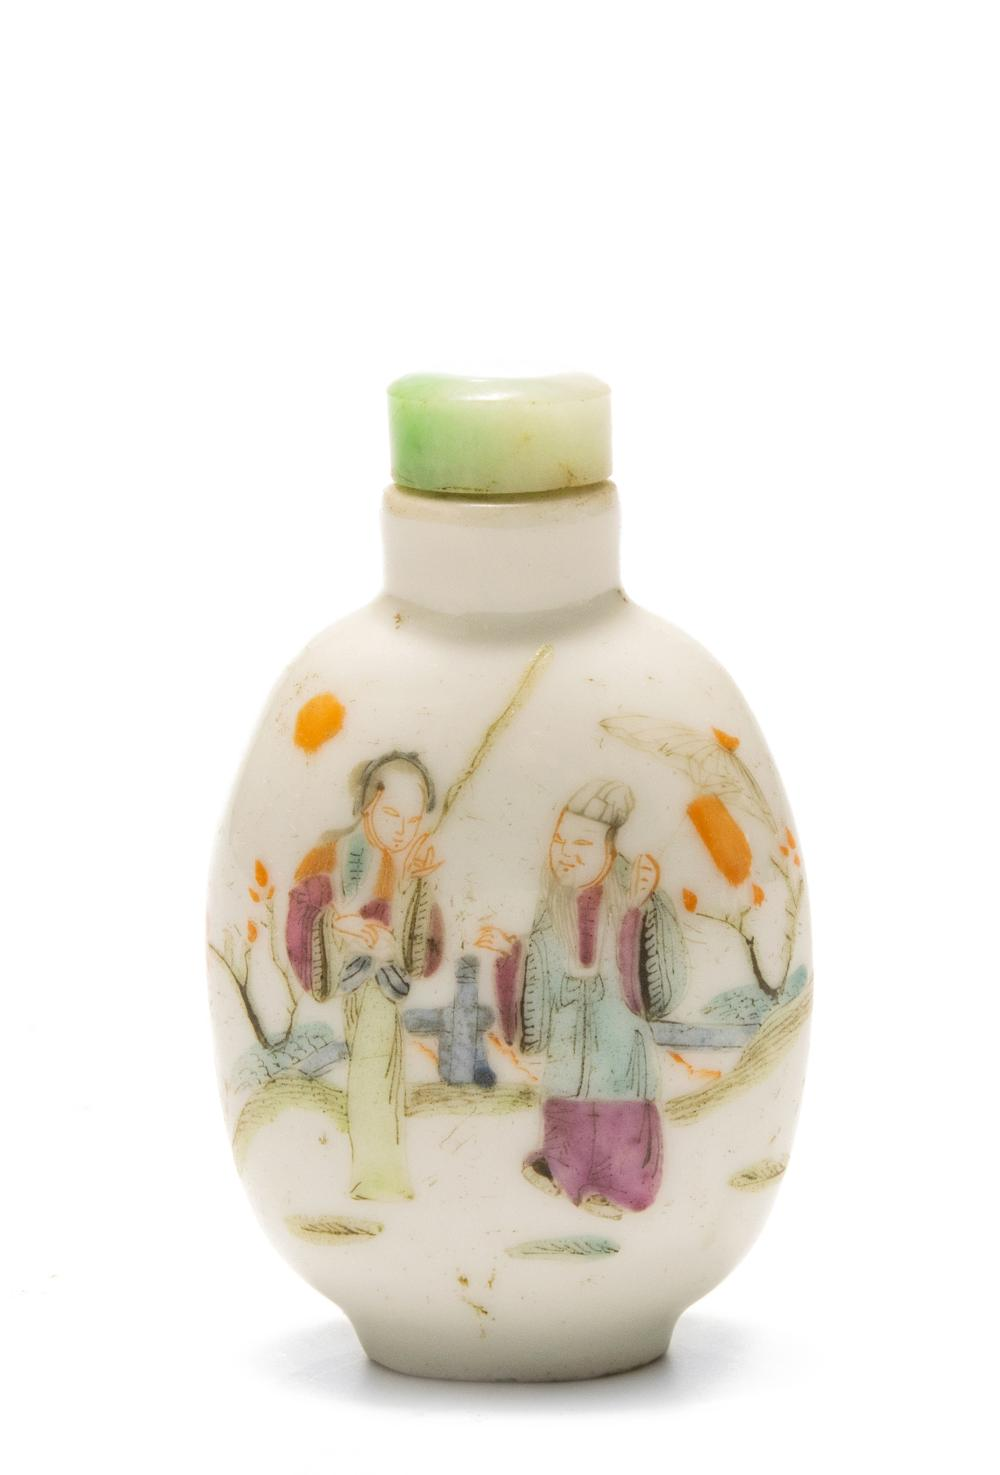 CHINESE PORCELAIN SNUFF BOTTLE WITH LADIES, 19TH CENTURY